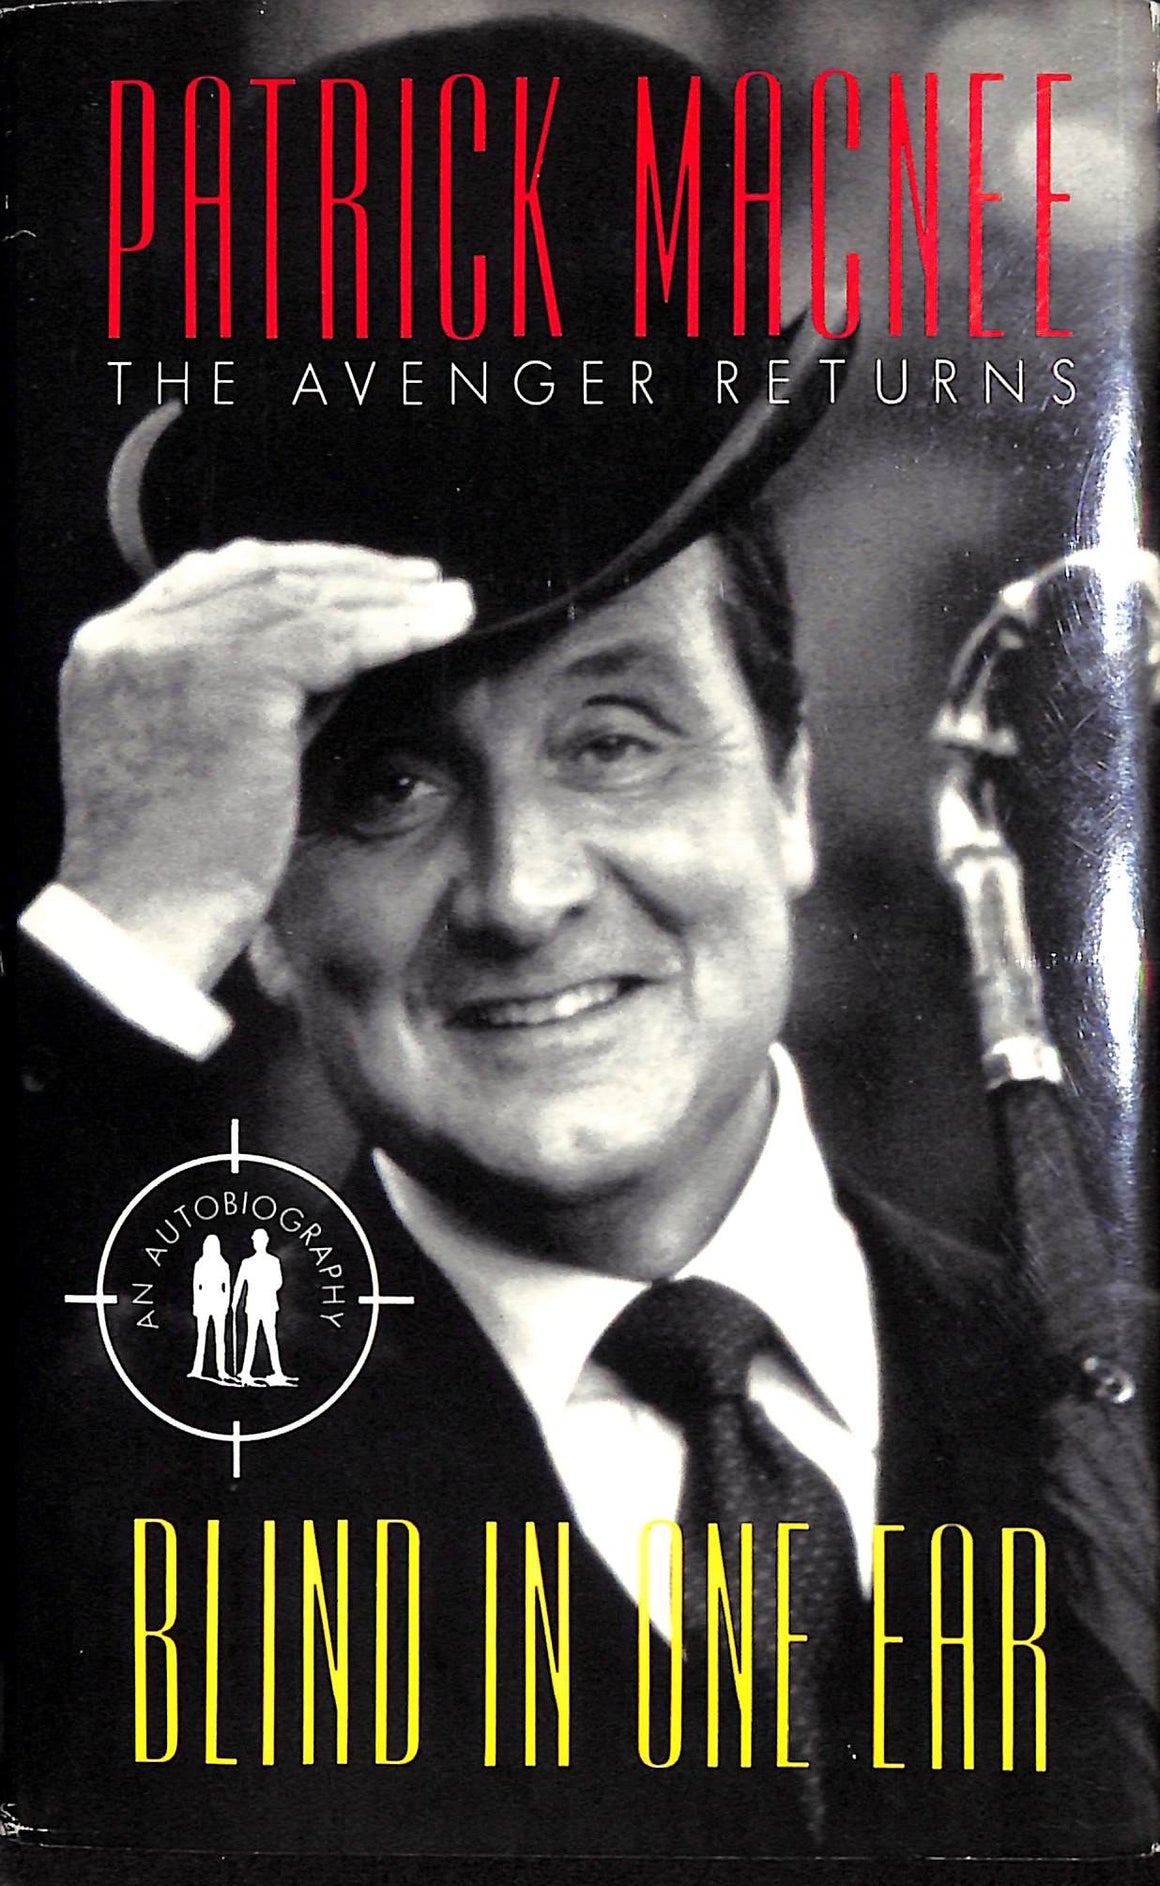 Blind In One Ear: The Avenger Returns by Patrick Macnee